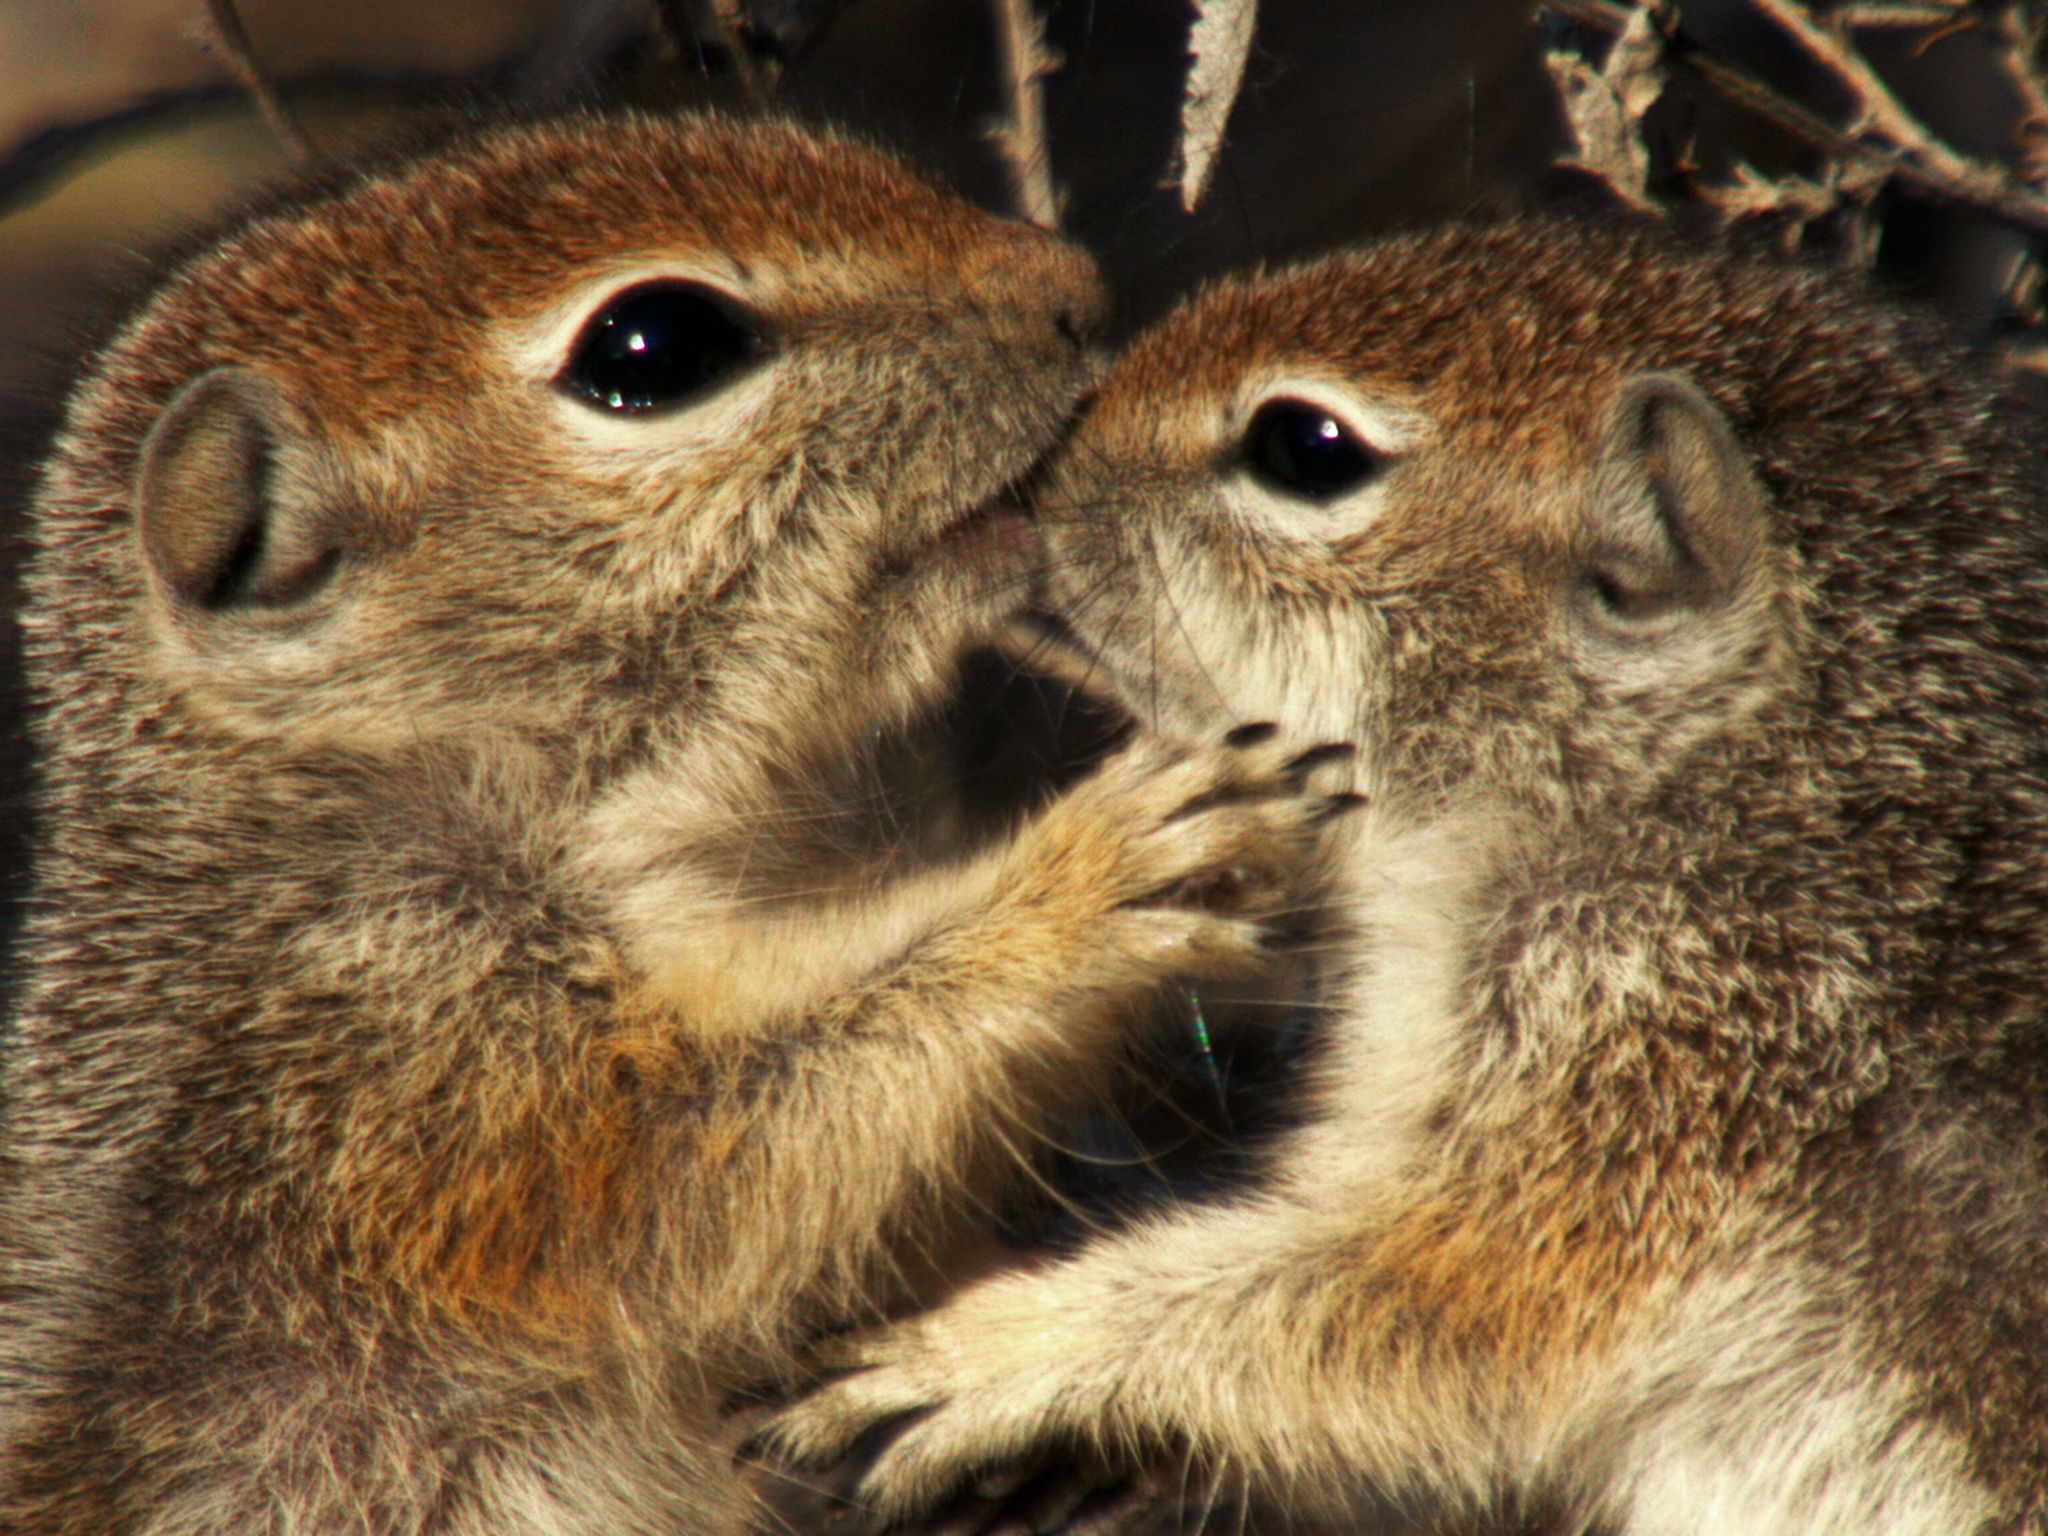 Saguaro National Park, Arizona: Young antelope squirrels play with each other. This image is... [Photo of the day - فبراير 2016]